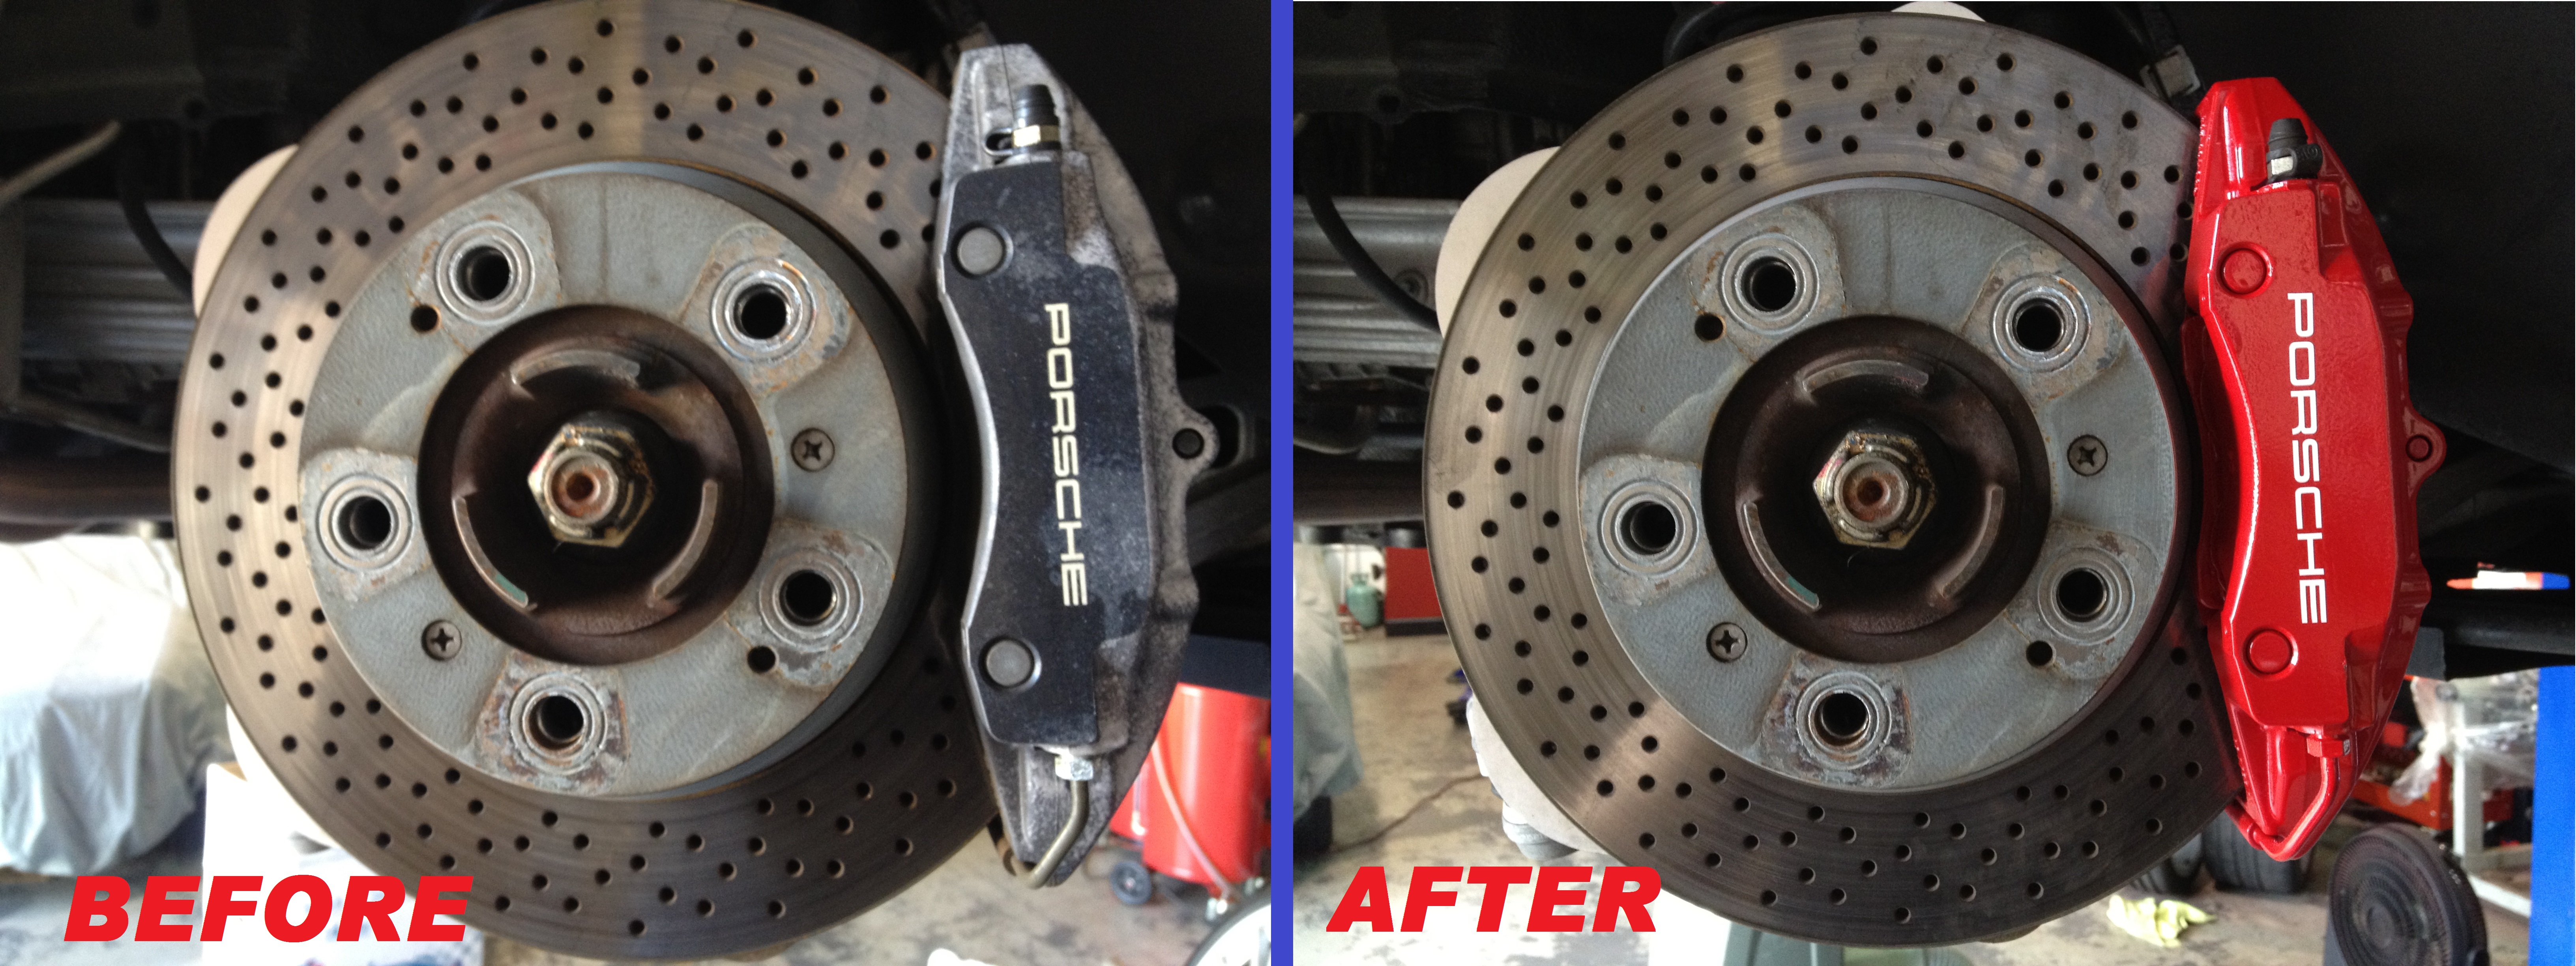 Brakecaliperpainting Porsche Red Beforeafter 001 Jpg